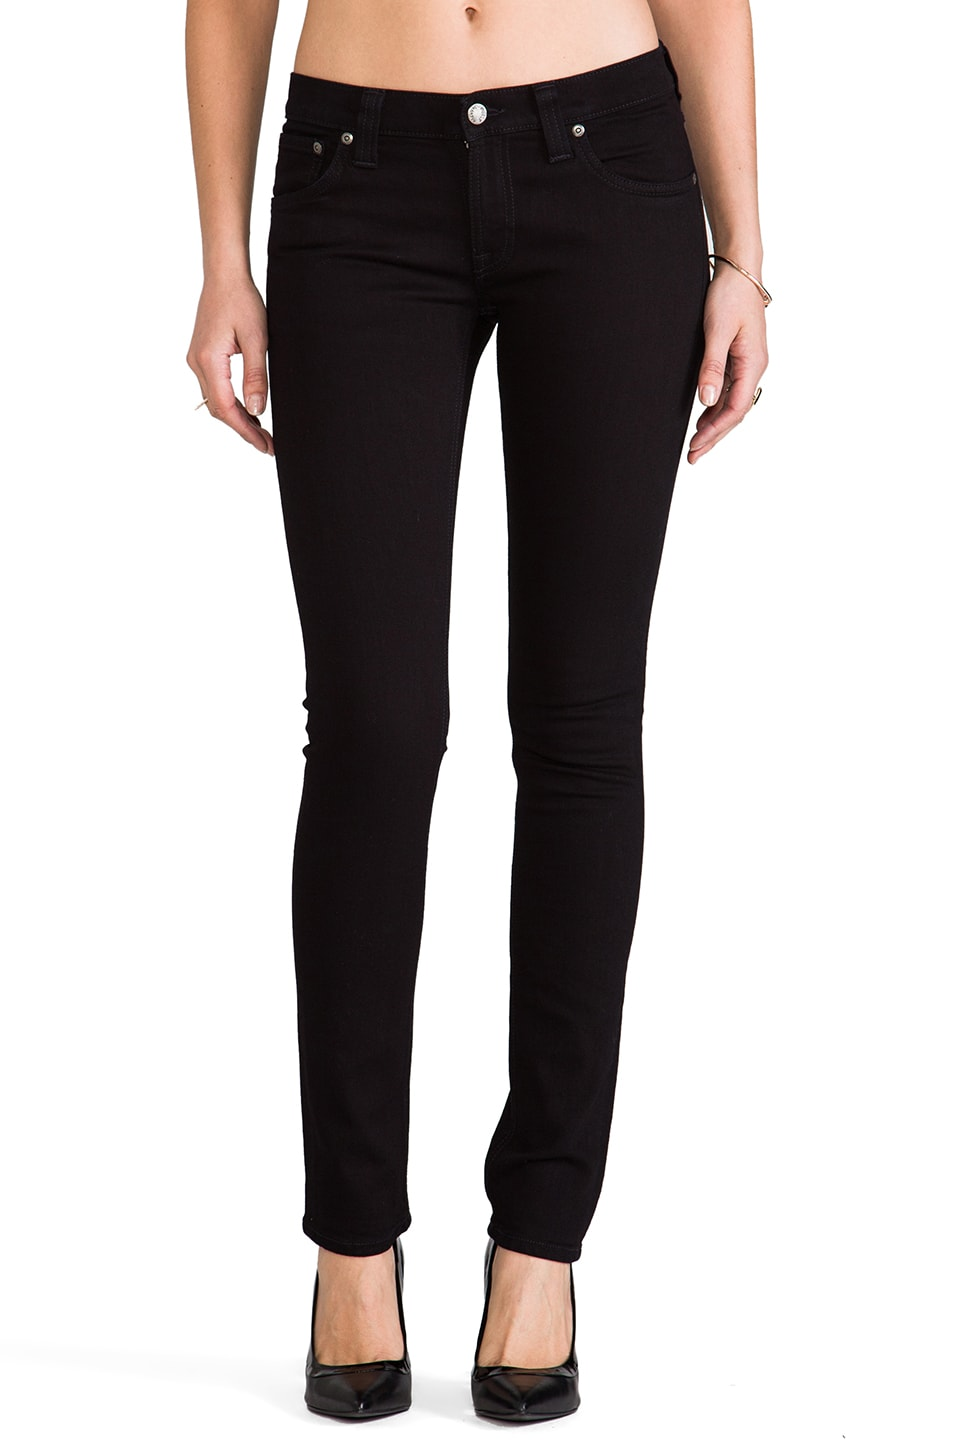 Nudie Jeans Tight Long John Skinny in Black Black